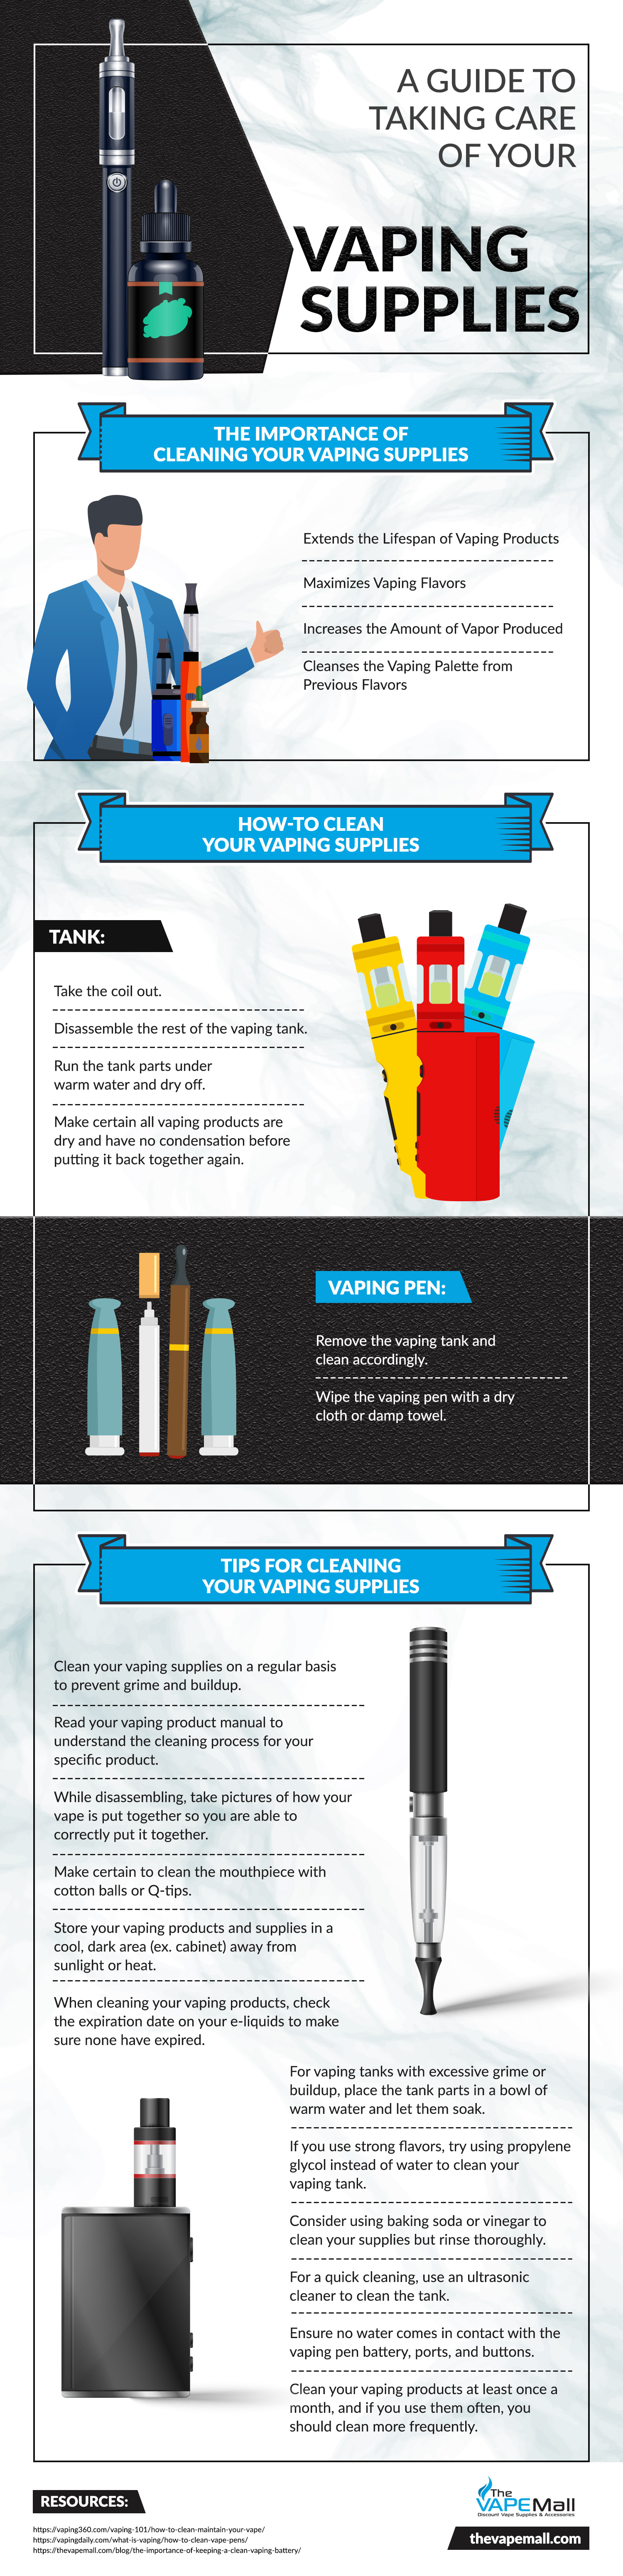 a-guide-to-taking-care-of-your-vaping-supplies.jpg